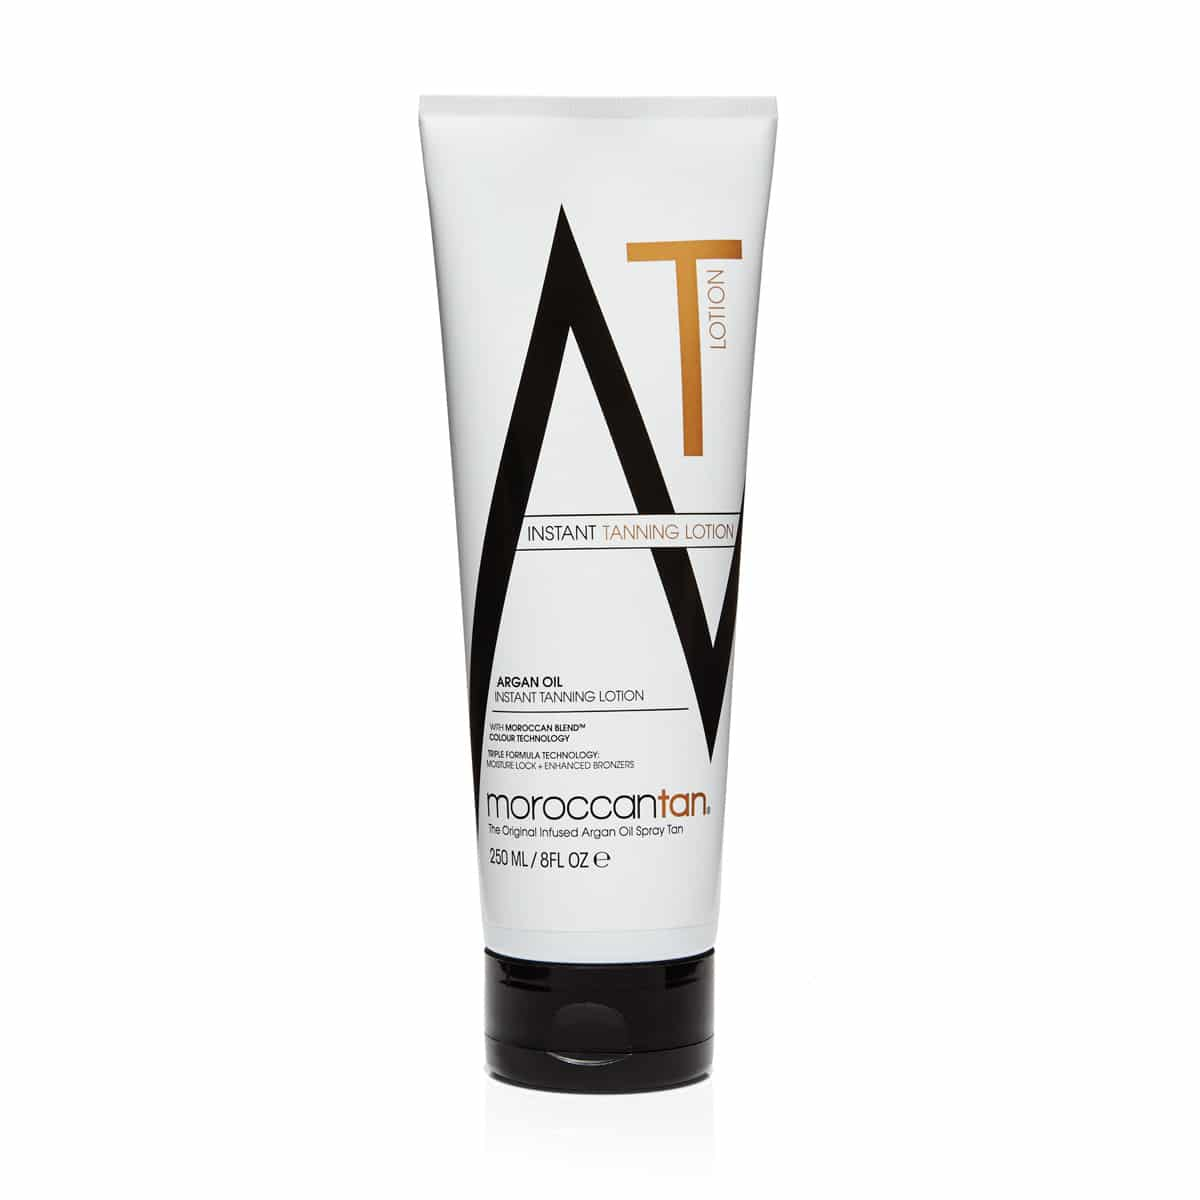 Moroccantan Instant Tanning Lotion 250ml The Beauty Lounge